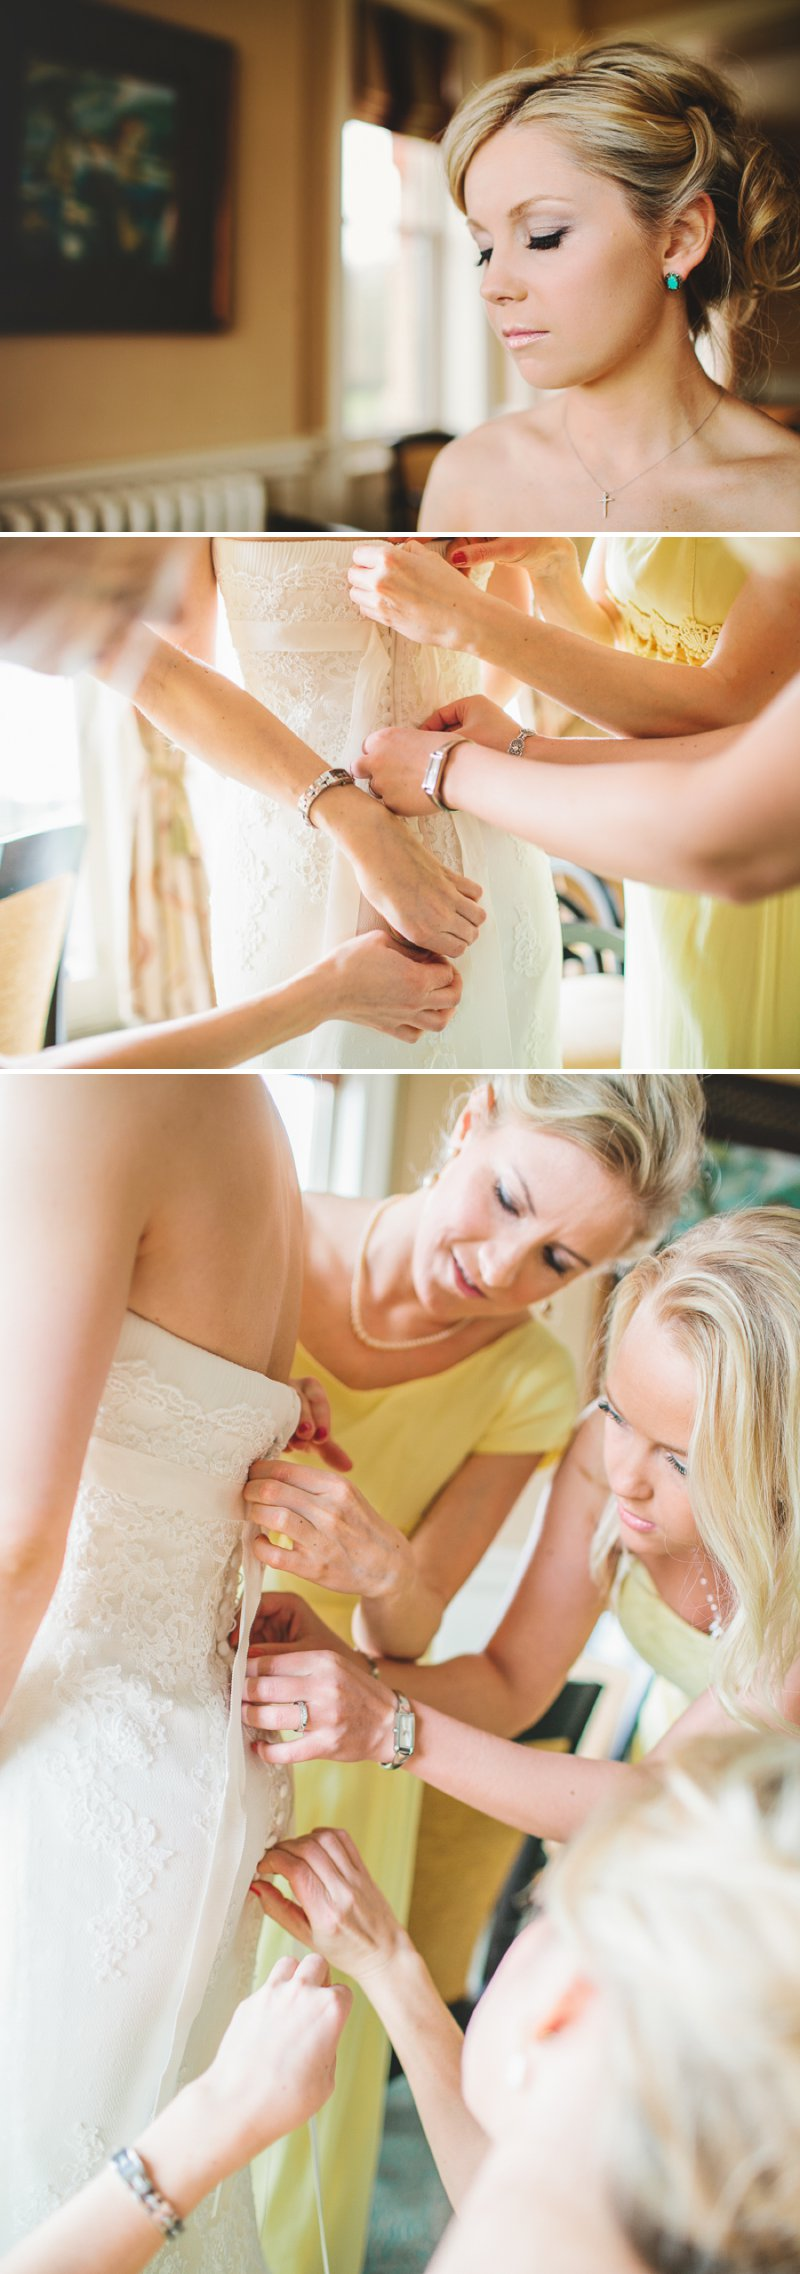 Yellow Themed Vintage Inspired Easter Wedding At Pembroke Lodge Richmond Park With Bride In Balira By Pronovias And Burberry Sandals With Groom In Blue Reiss Suit And Bridesmaids In Yellow Vintage Dresses With Images By Shell De Mar 2